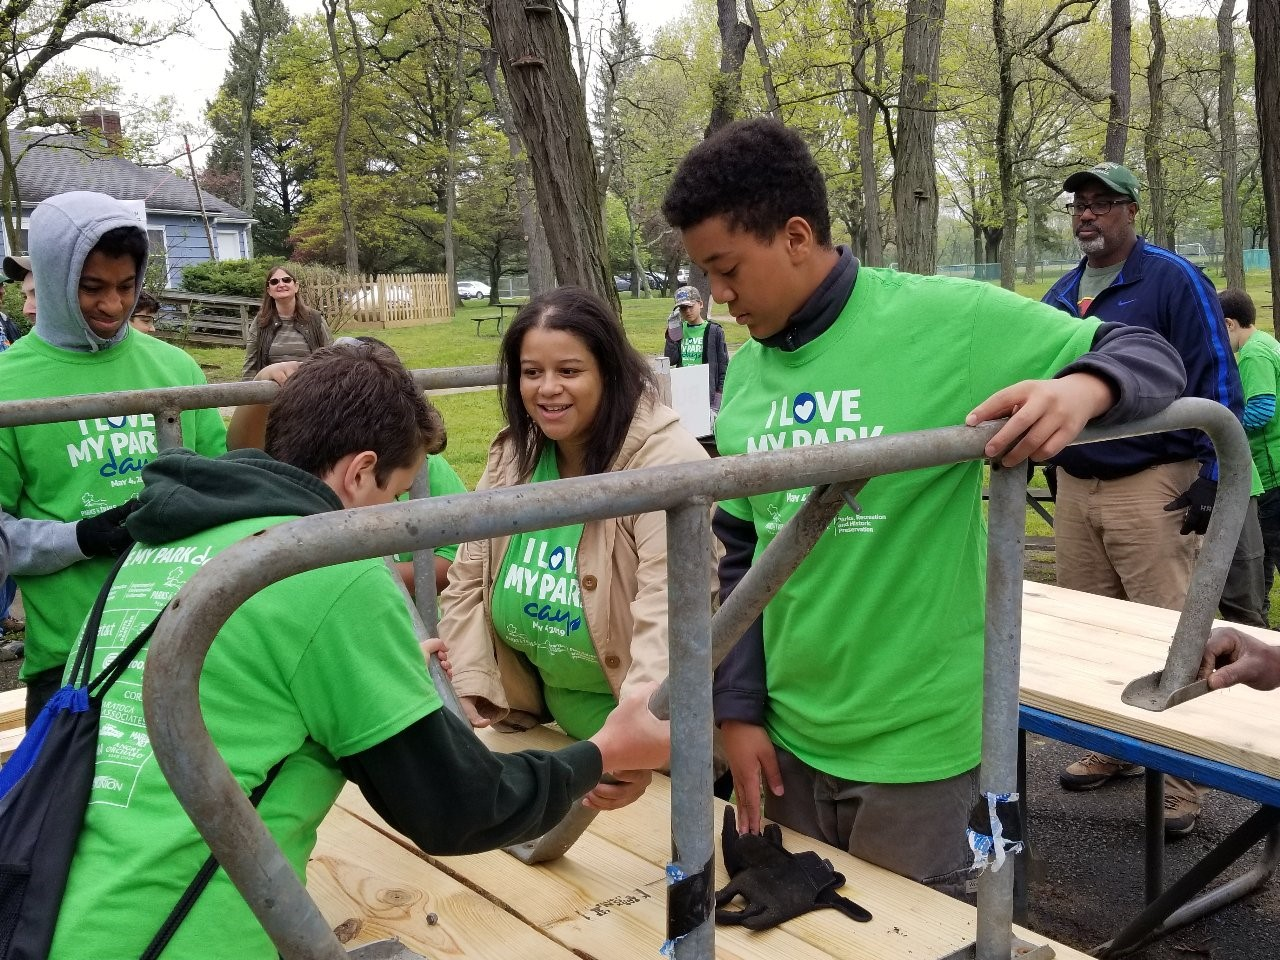 Constituents work with Assemblywoman Solages to build picnic tables at the Valley Stream State Park on I Love My Parks Day.